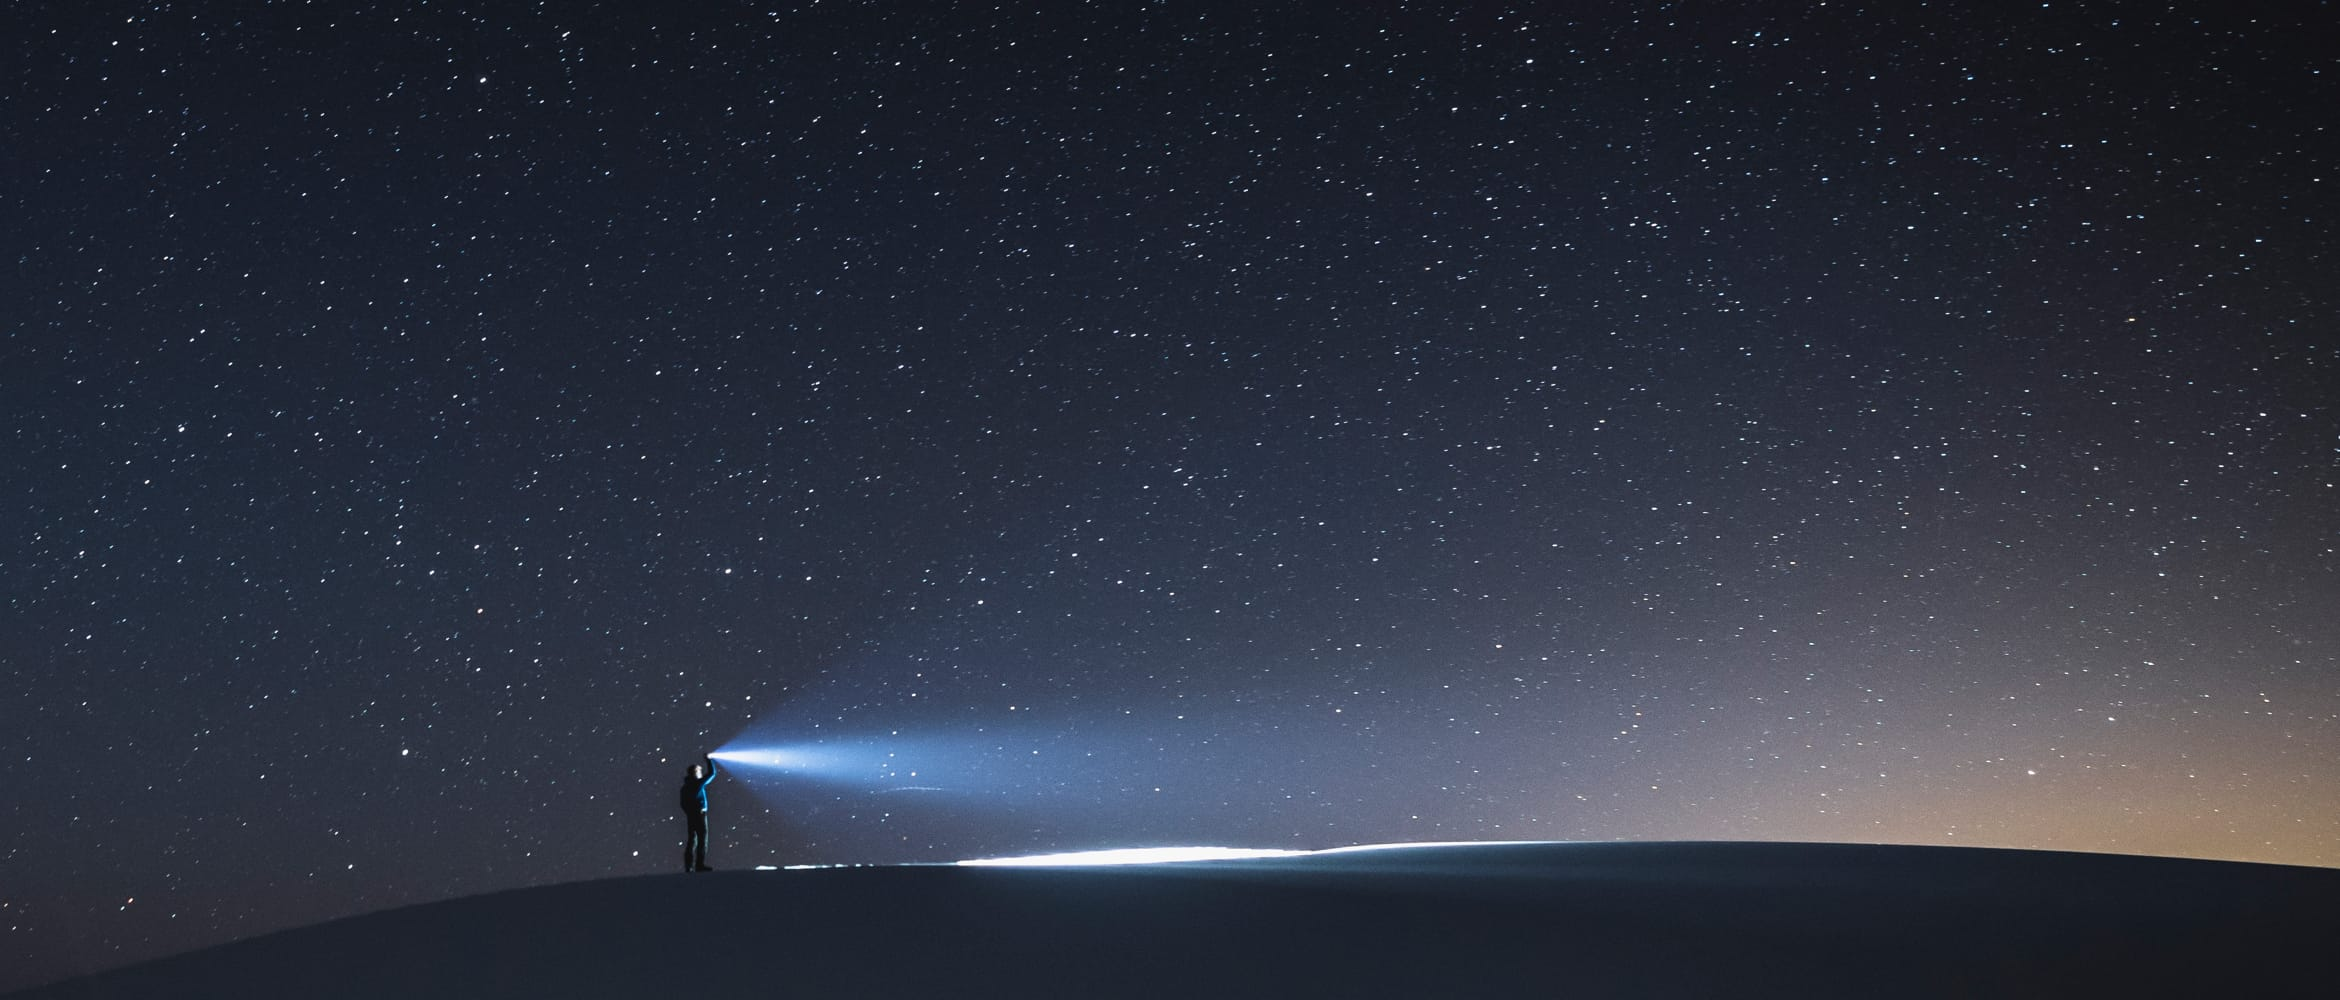 lone person shines light in the dark at night